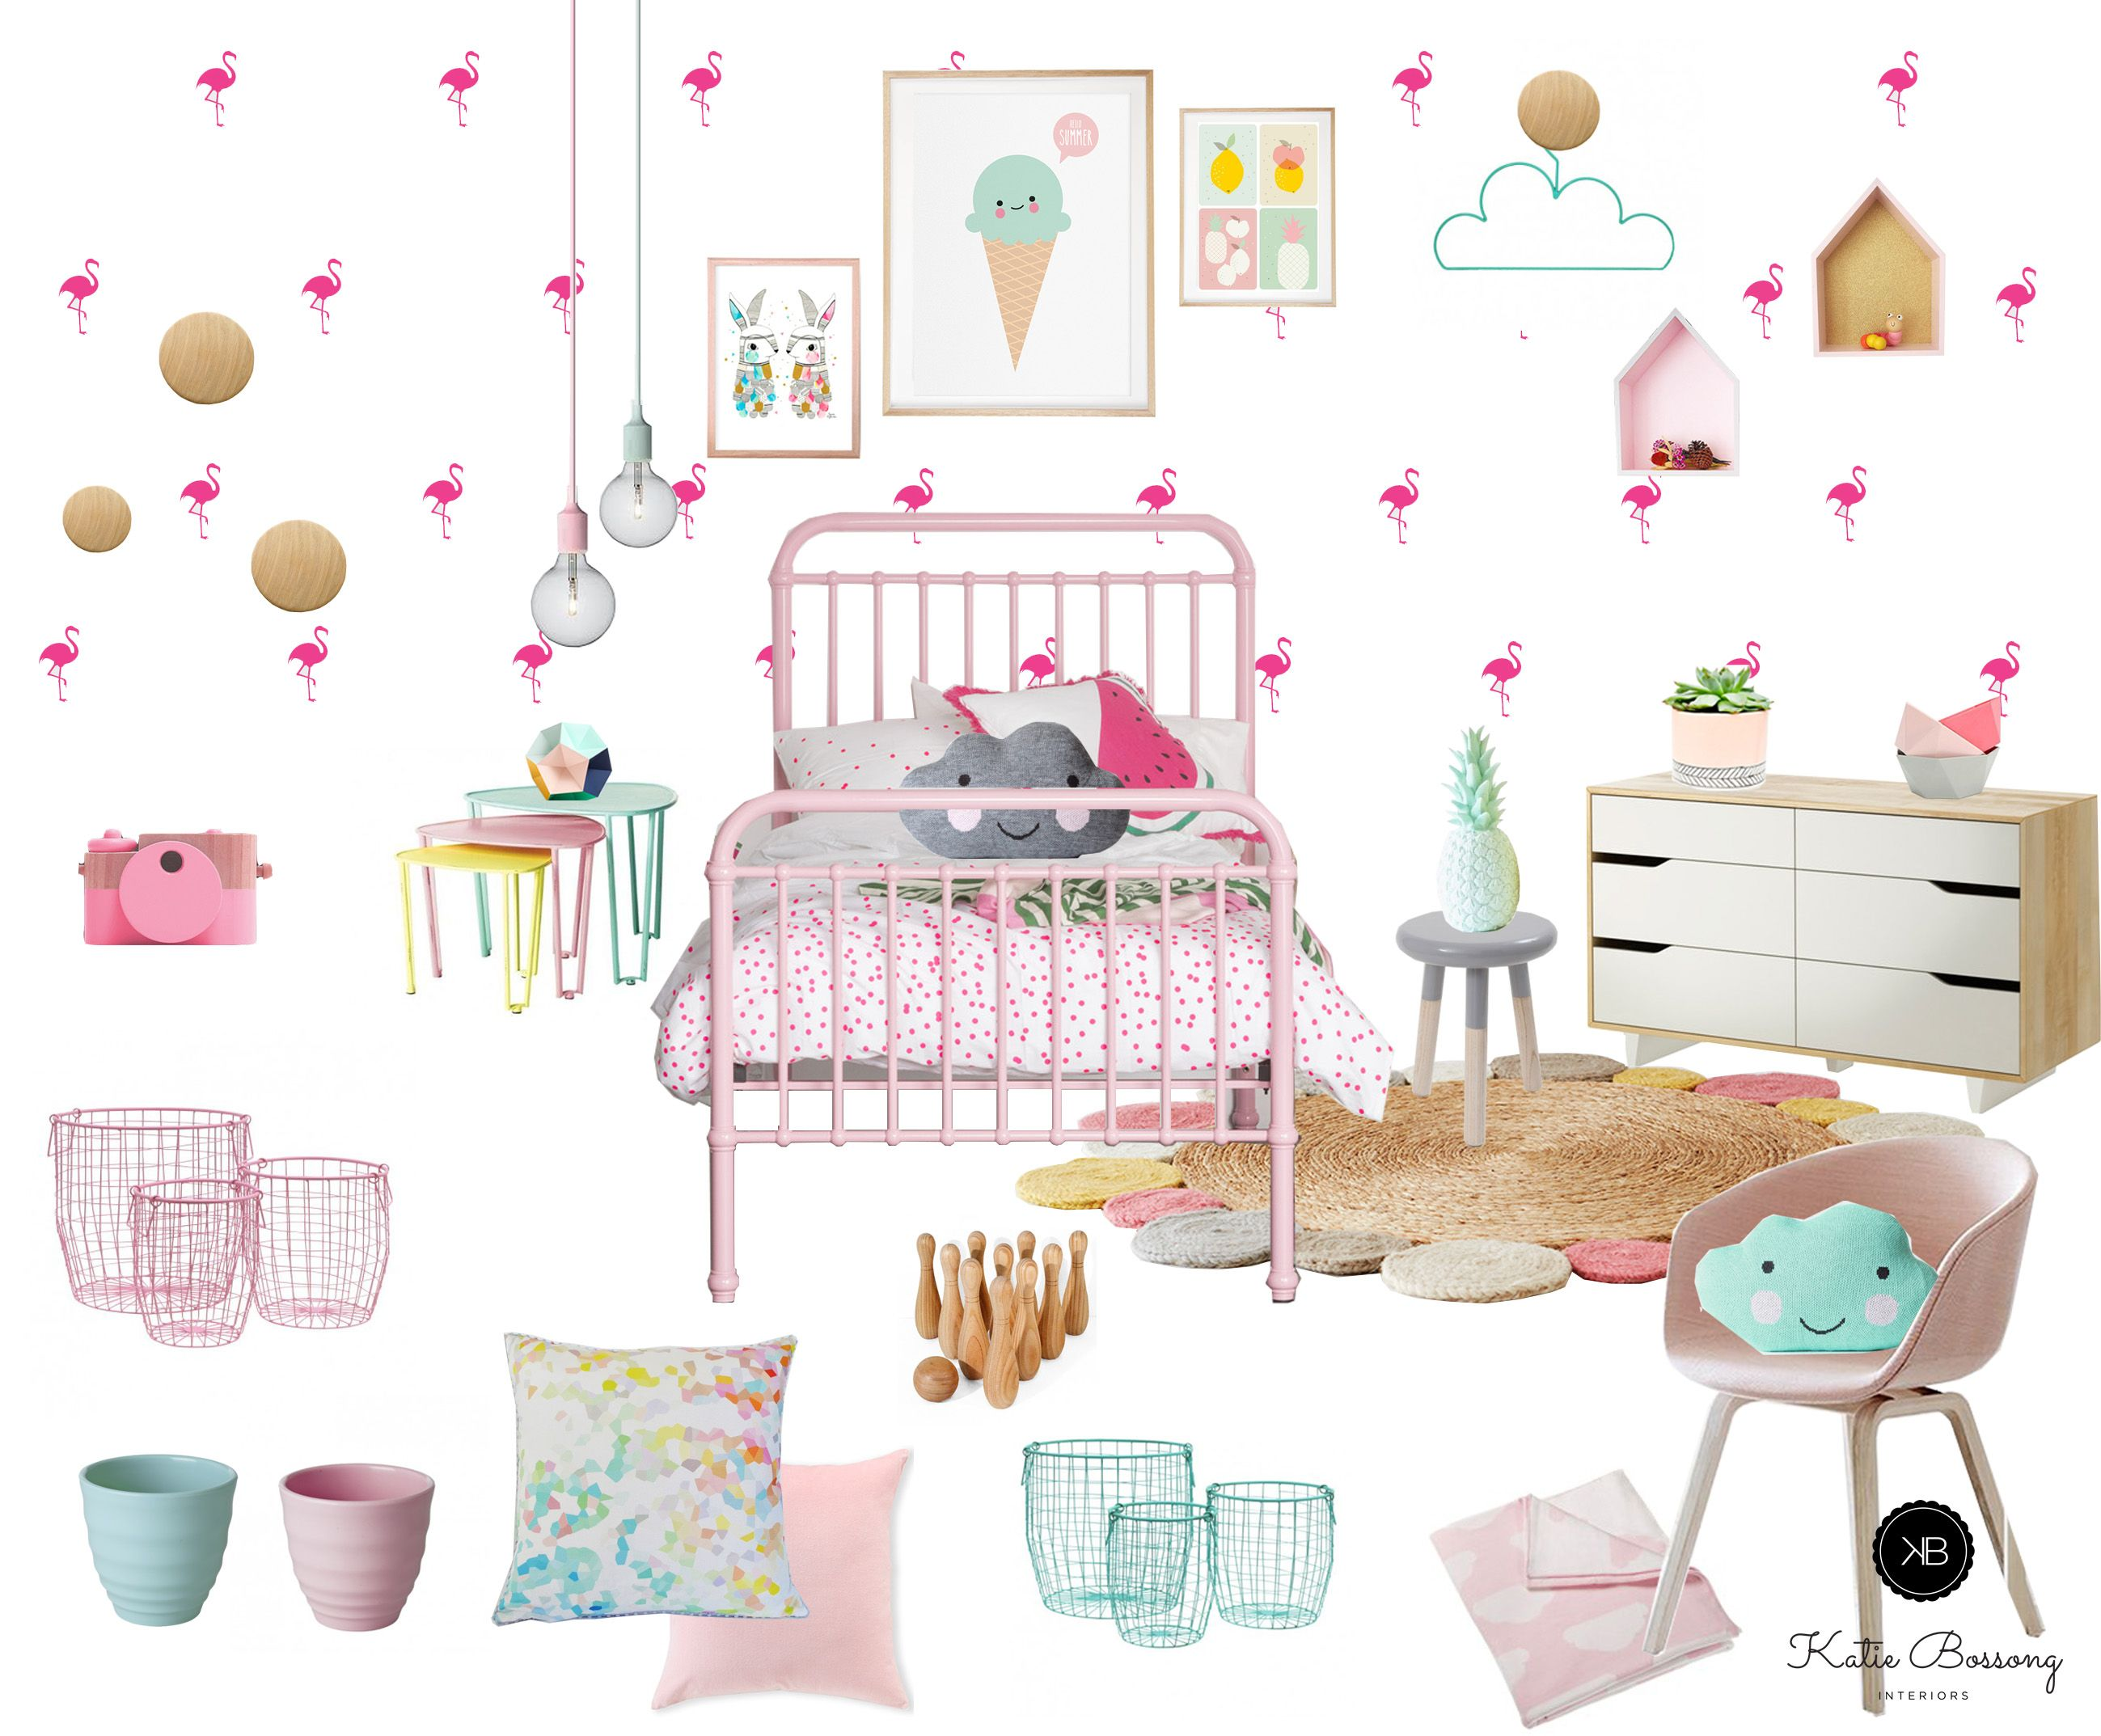 Pastel Kids Interior Bedroom Girl Room Girls Room Decor Kids Bedroom